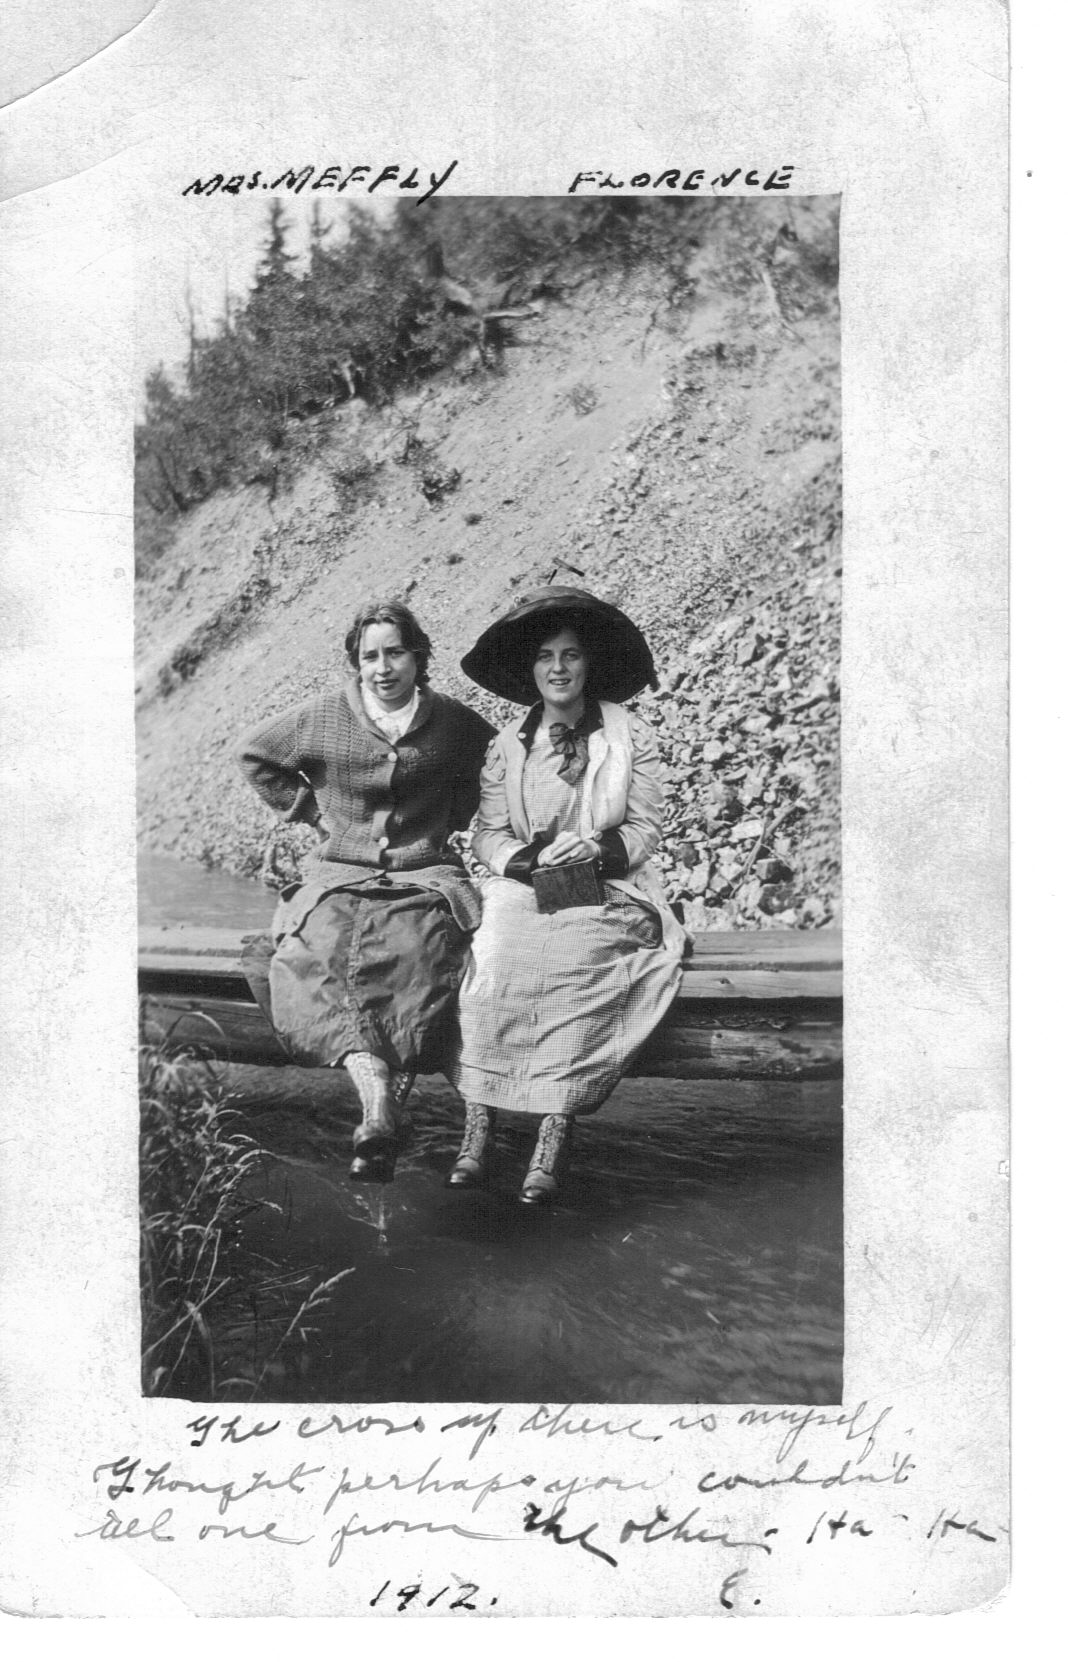 A picture-turned-postcard from 1912 addressed to Mr. Carl Hedenskog in La Junta, Colorado. The women are self-identified as Mrs. Meffly and Florence [Hedenskog]. Notice the large hat and the lace-up, close-toed shoes.